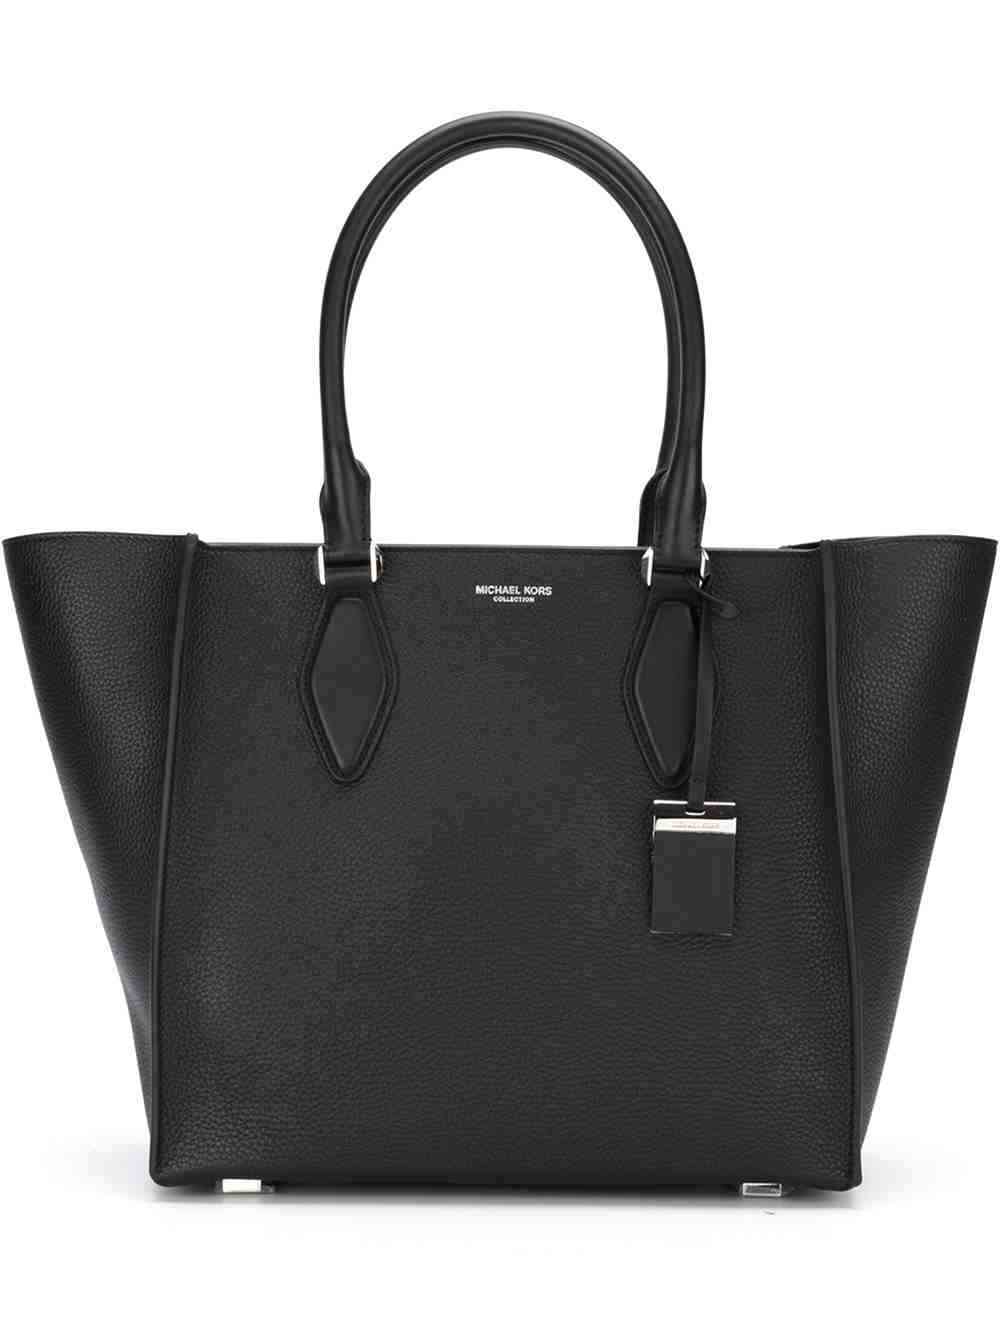 Michael Kors - sac (1095€)